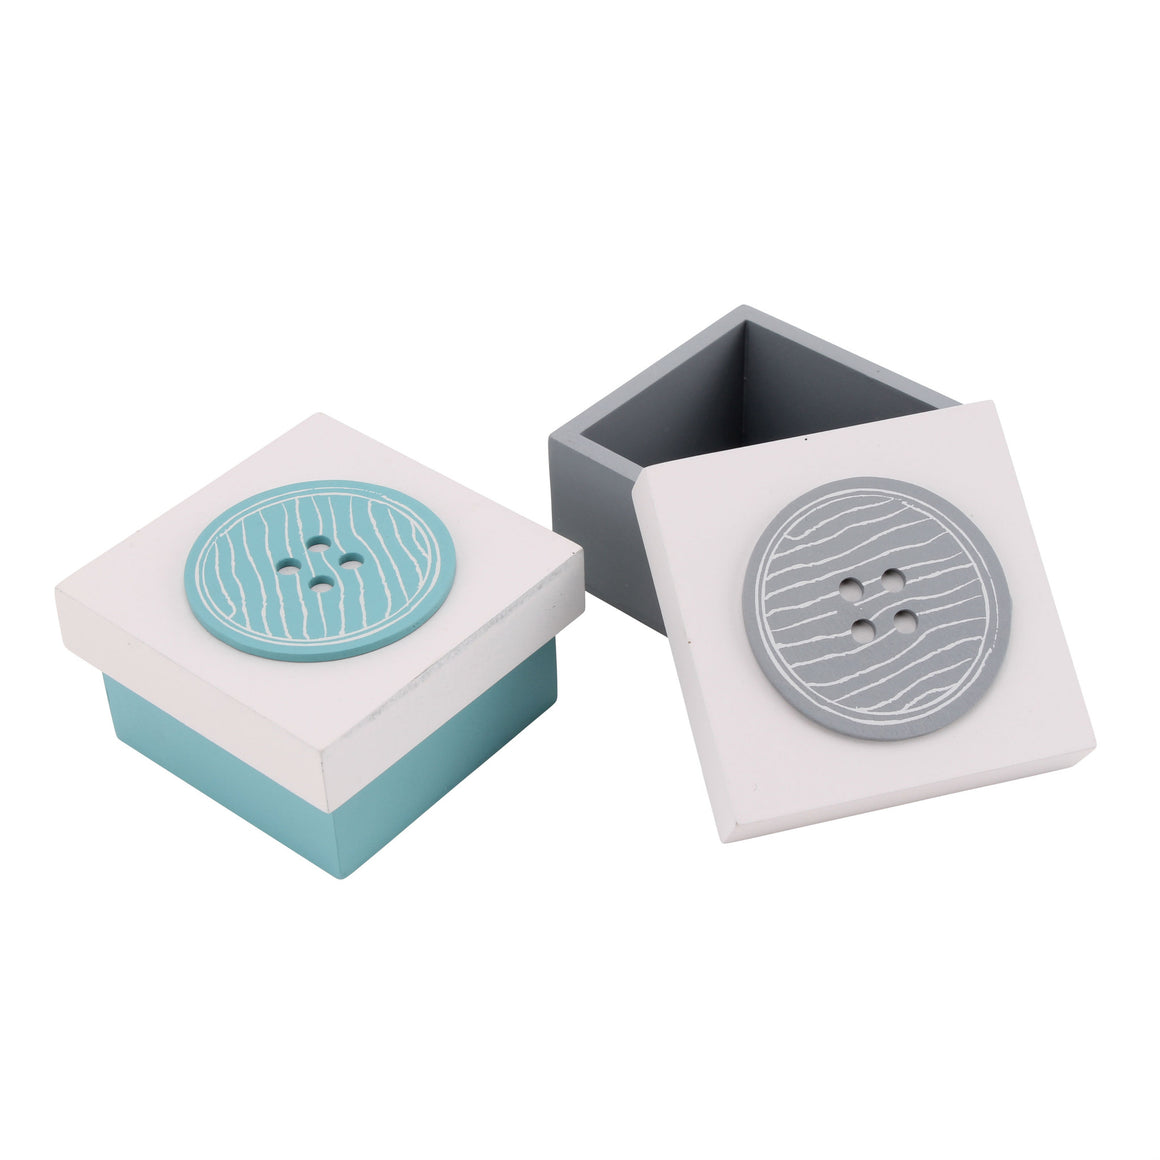 Set of 2 Wooden Button Boxes - The Love Trees